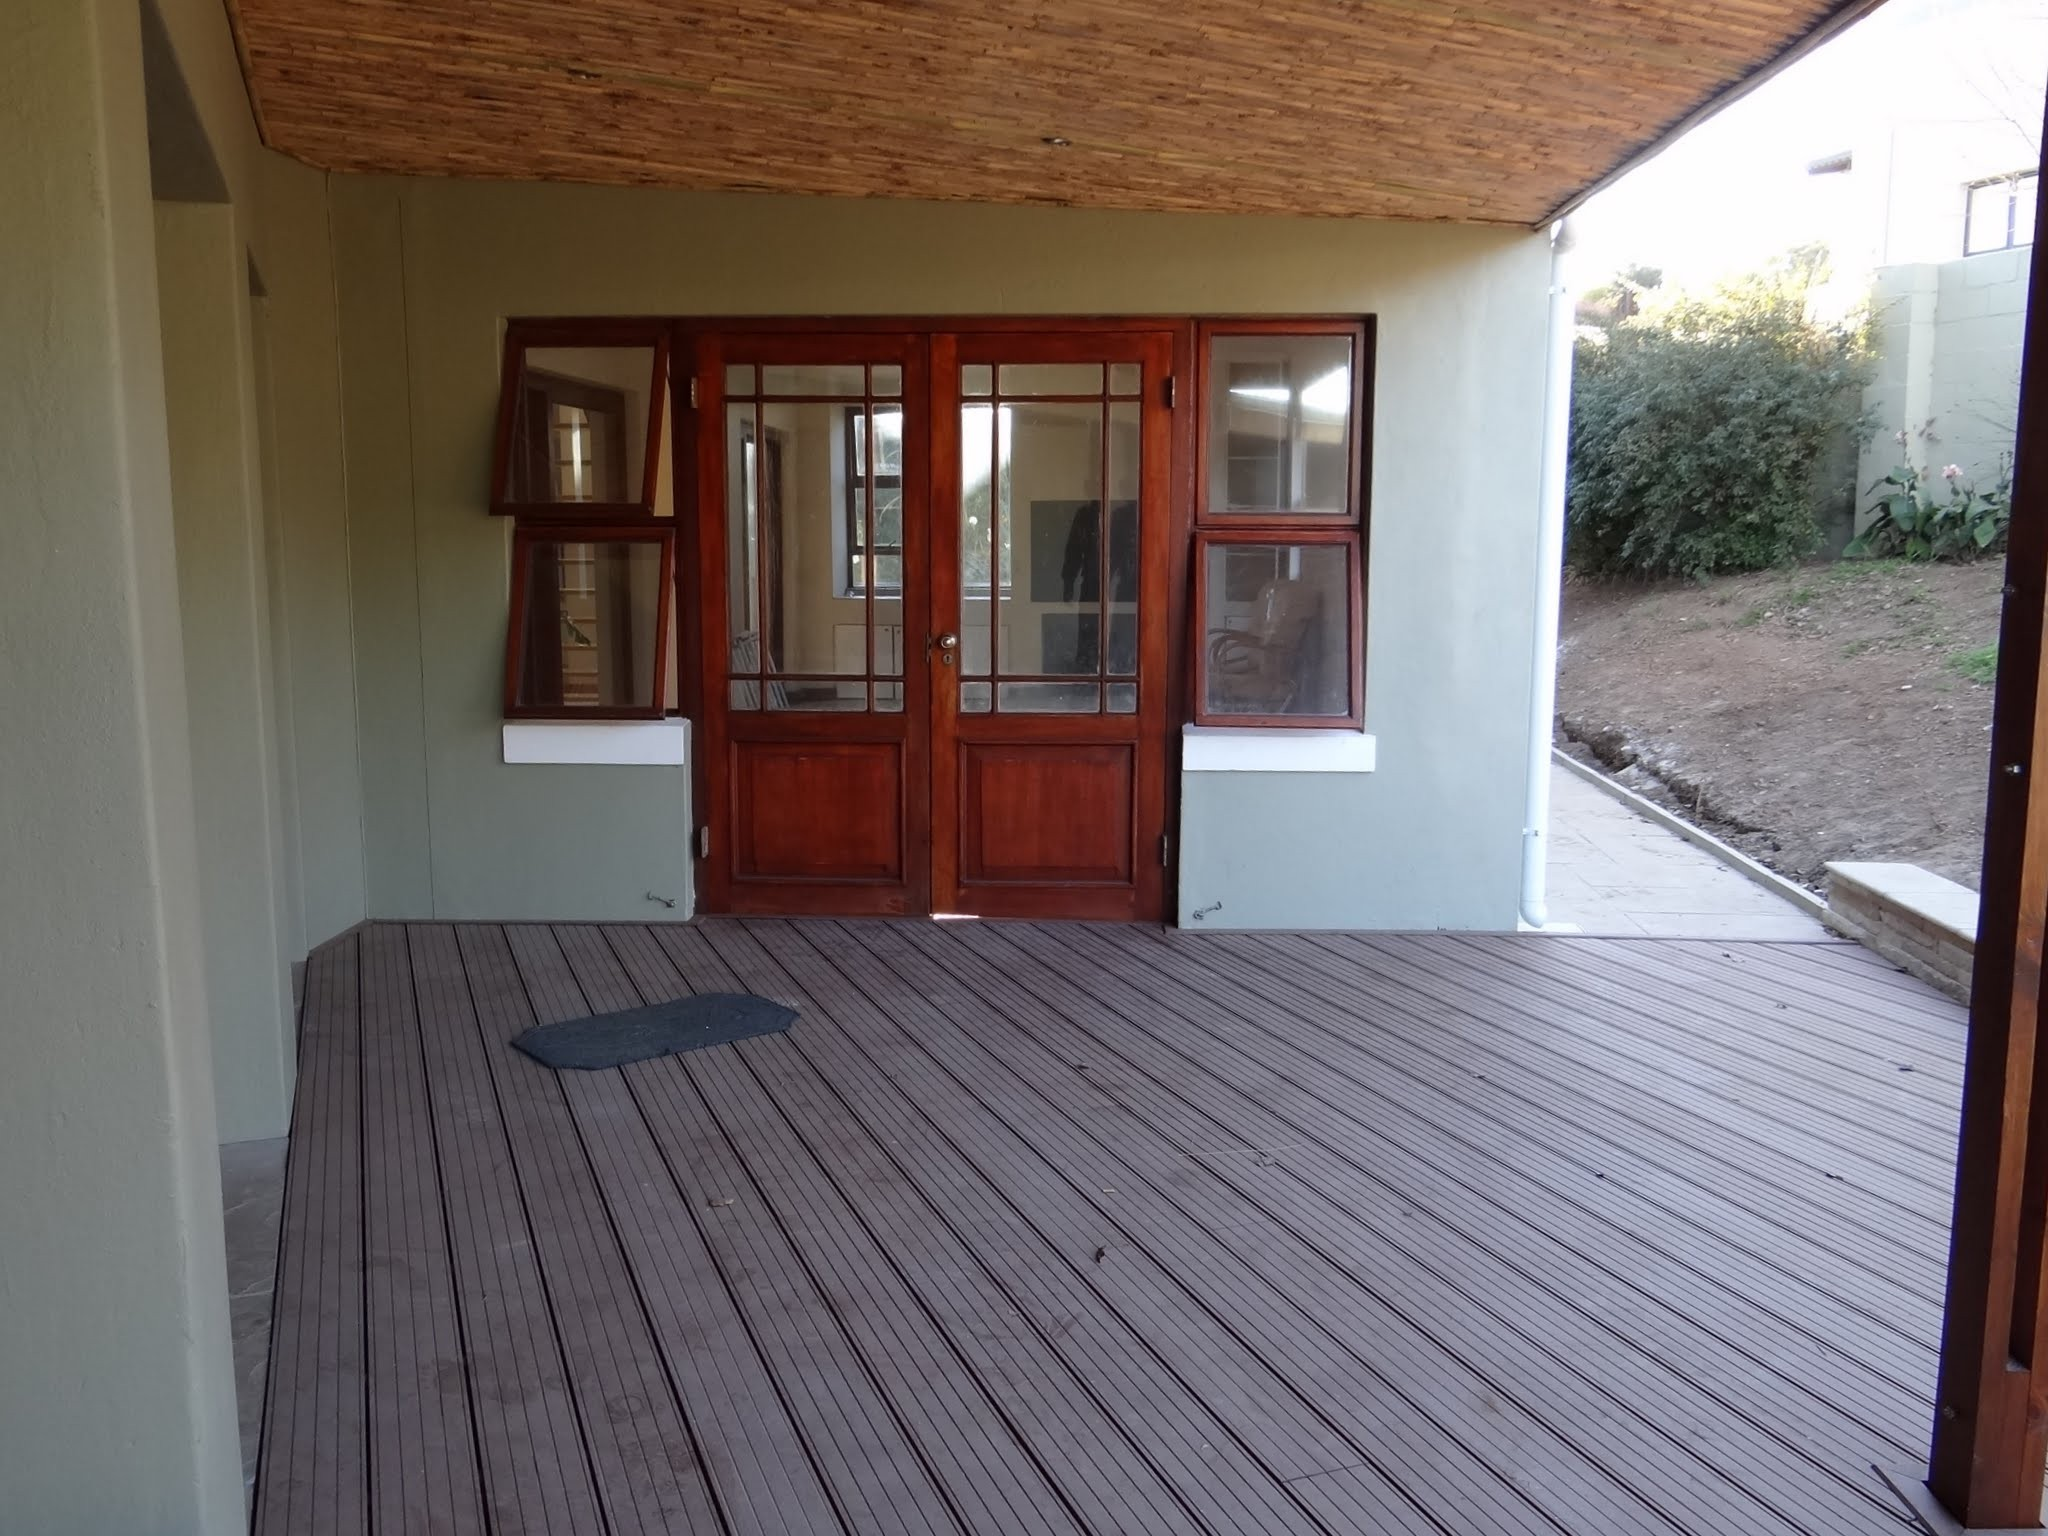 Deck made of Composite Wood